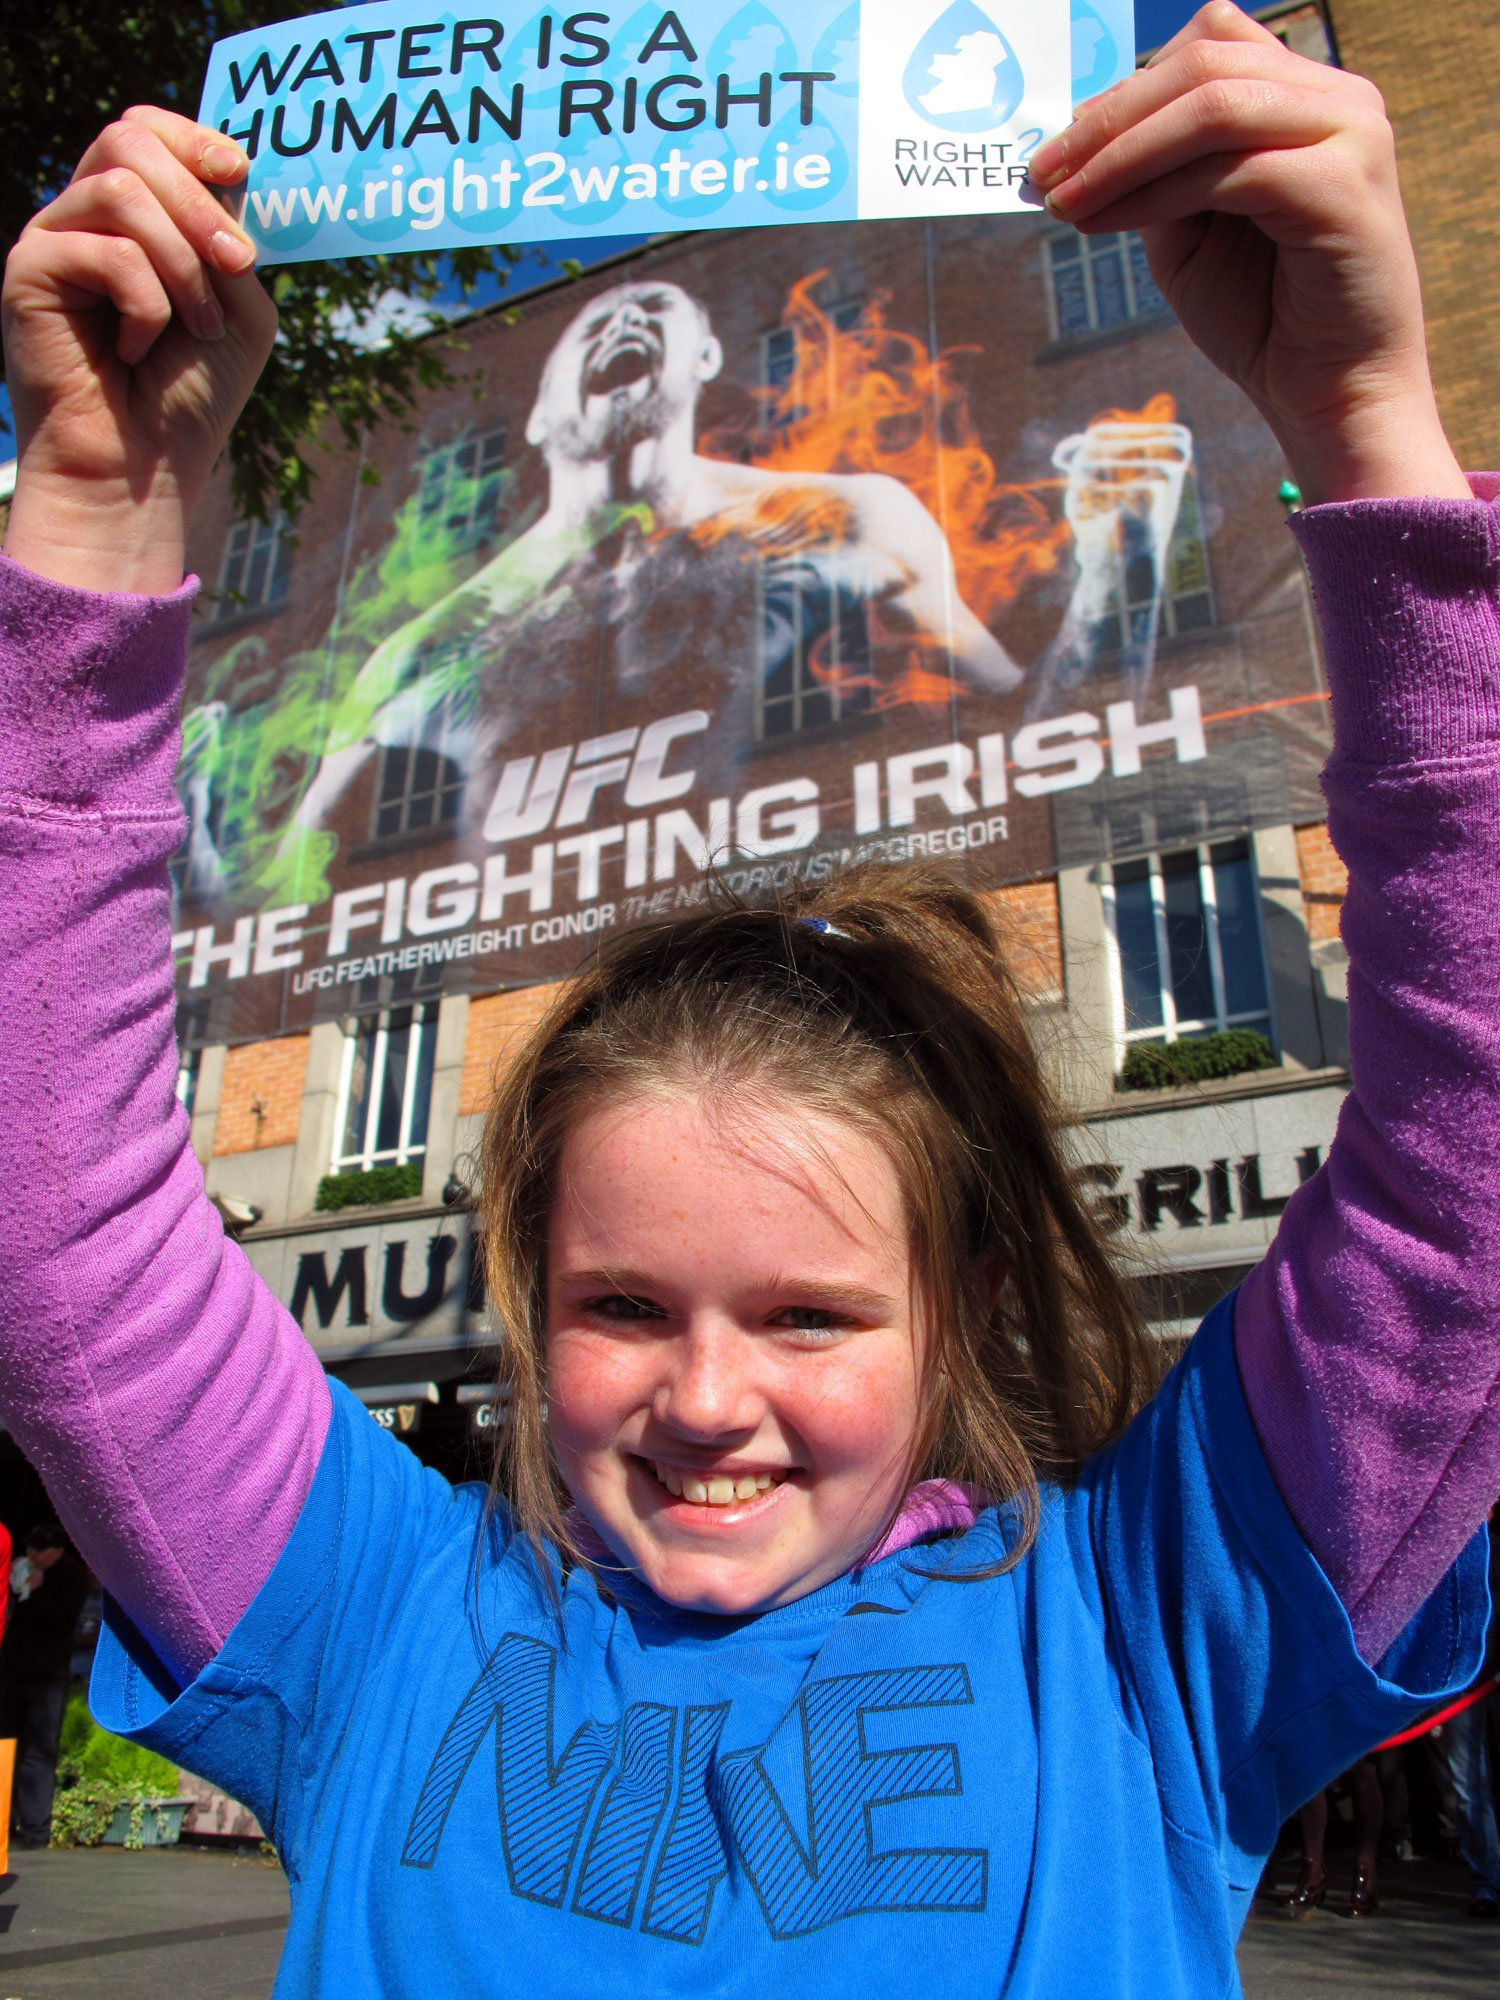 Clodagh O'Brien holds a water protest sticker in support of the protests.